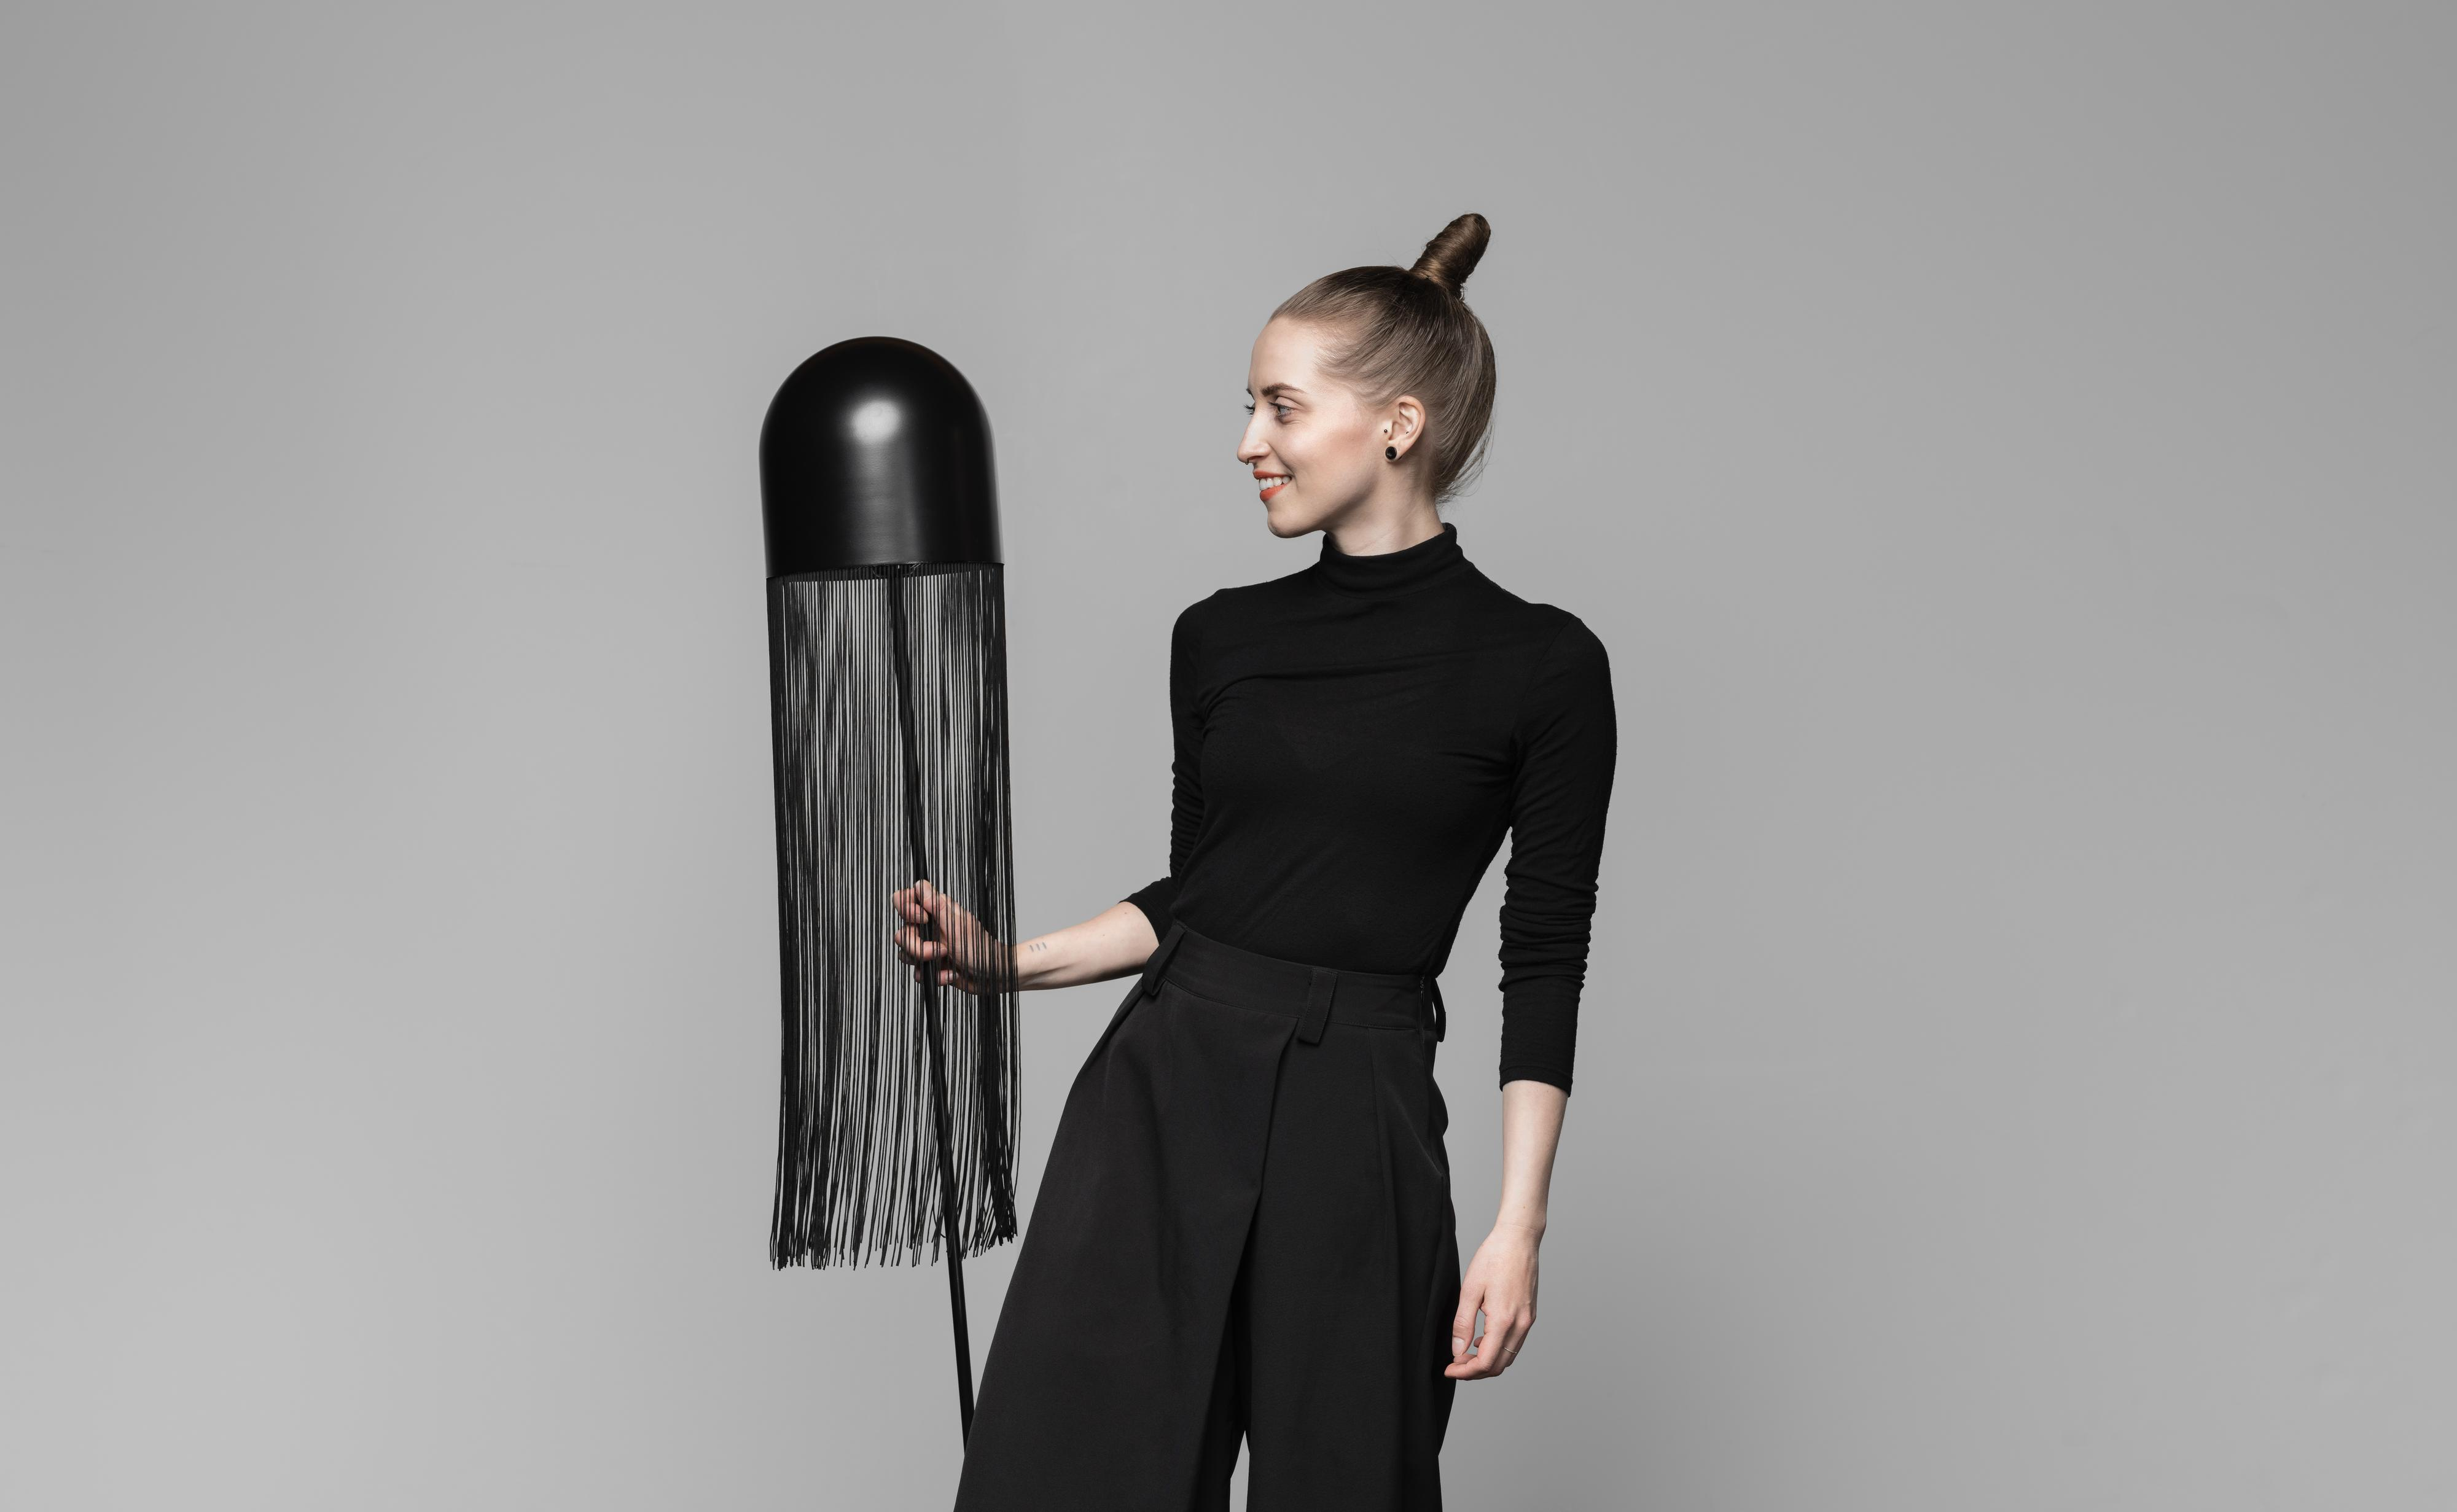 Laura Vare Is Design Forum Finland S Young Designer Of The Year 2019 Design Forum Finland